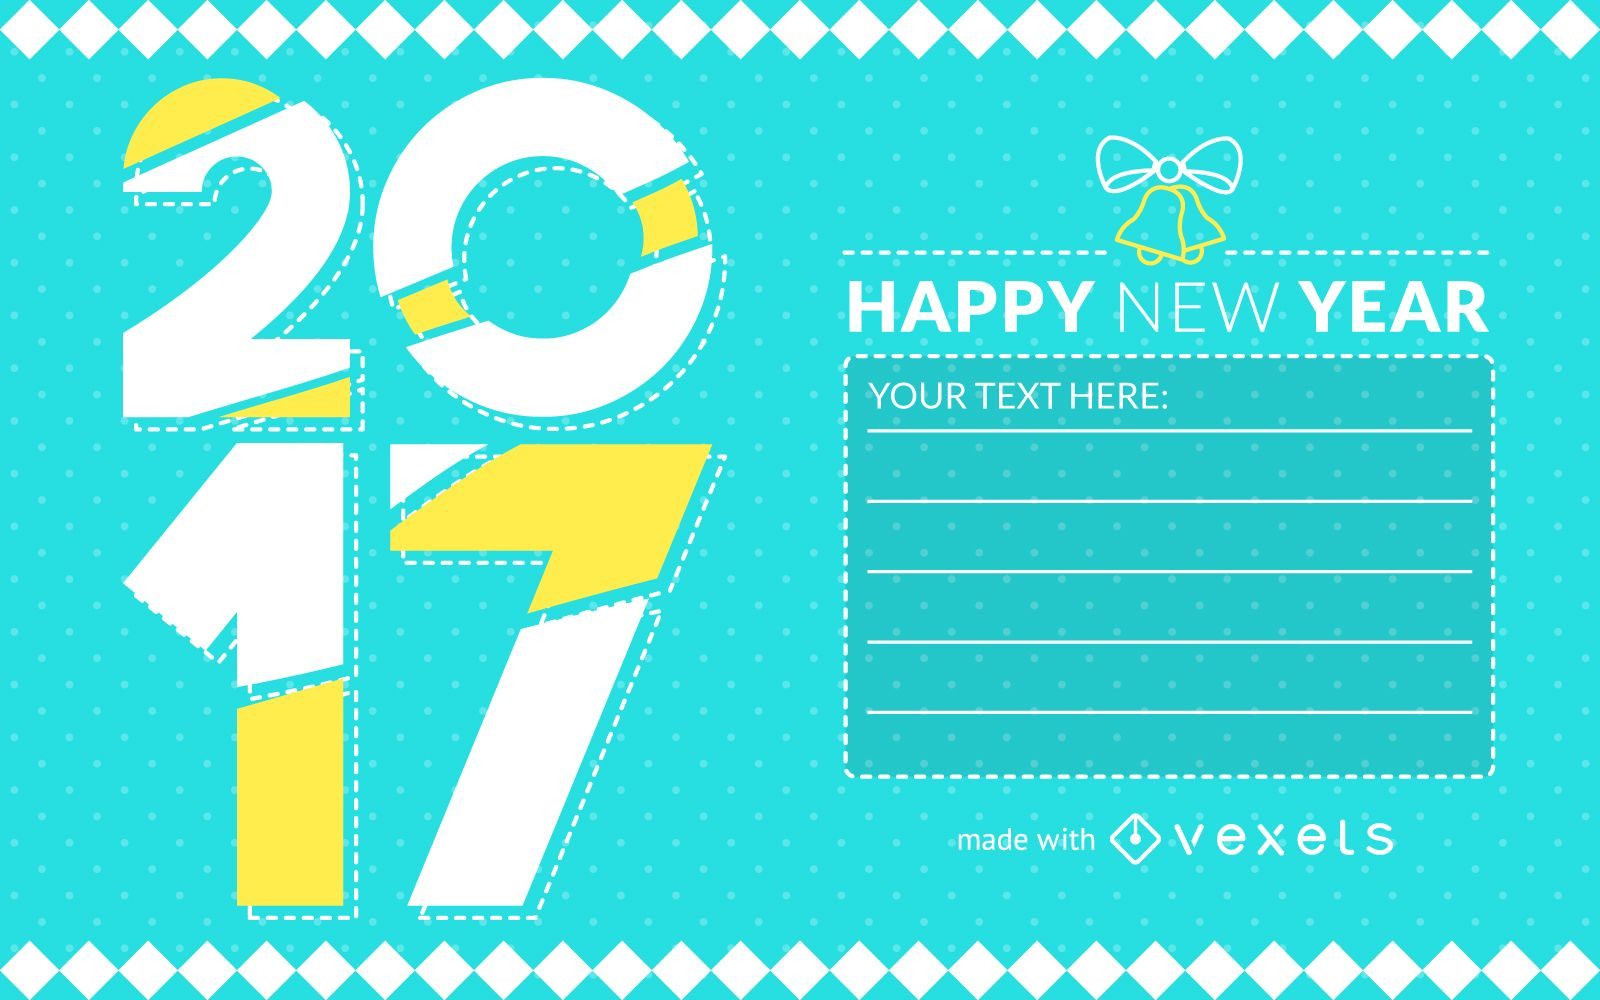 2017 new year card maker download large image 1600x1000px